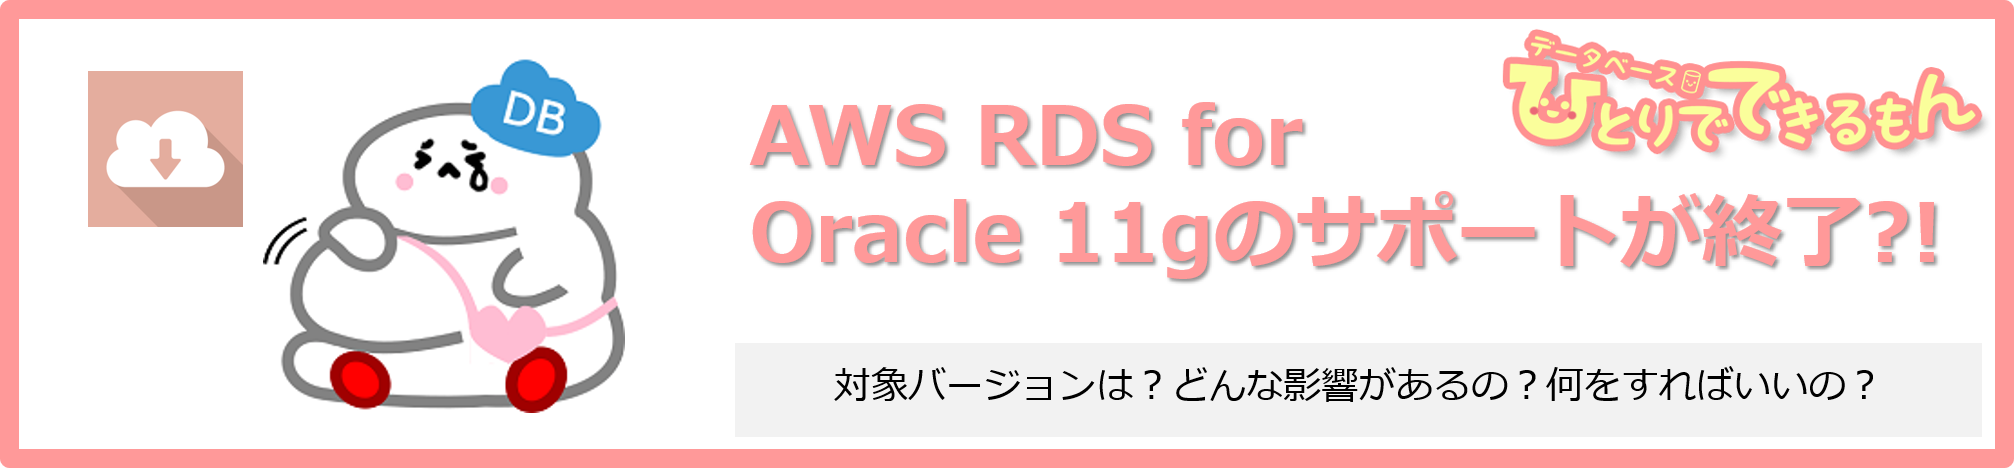 AWS RDS for Oracle 11gのサポートが終了します!